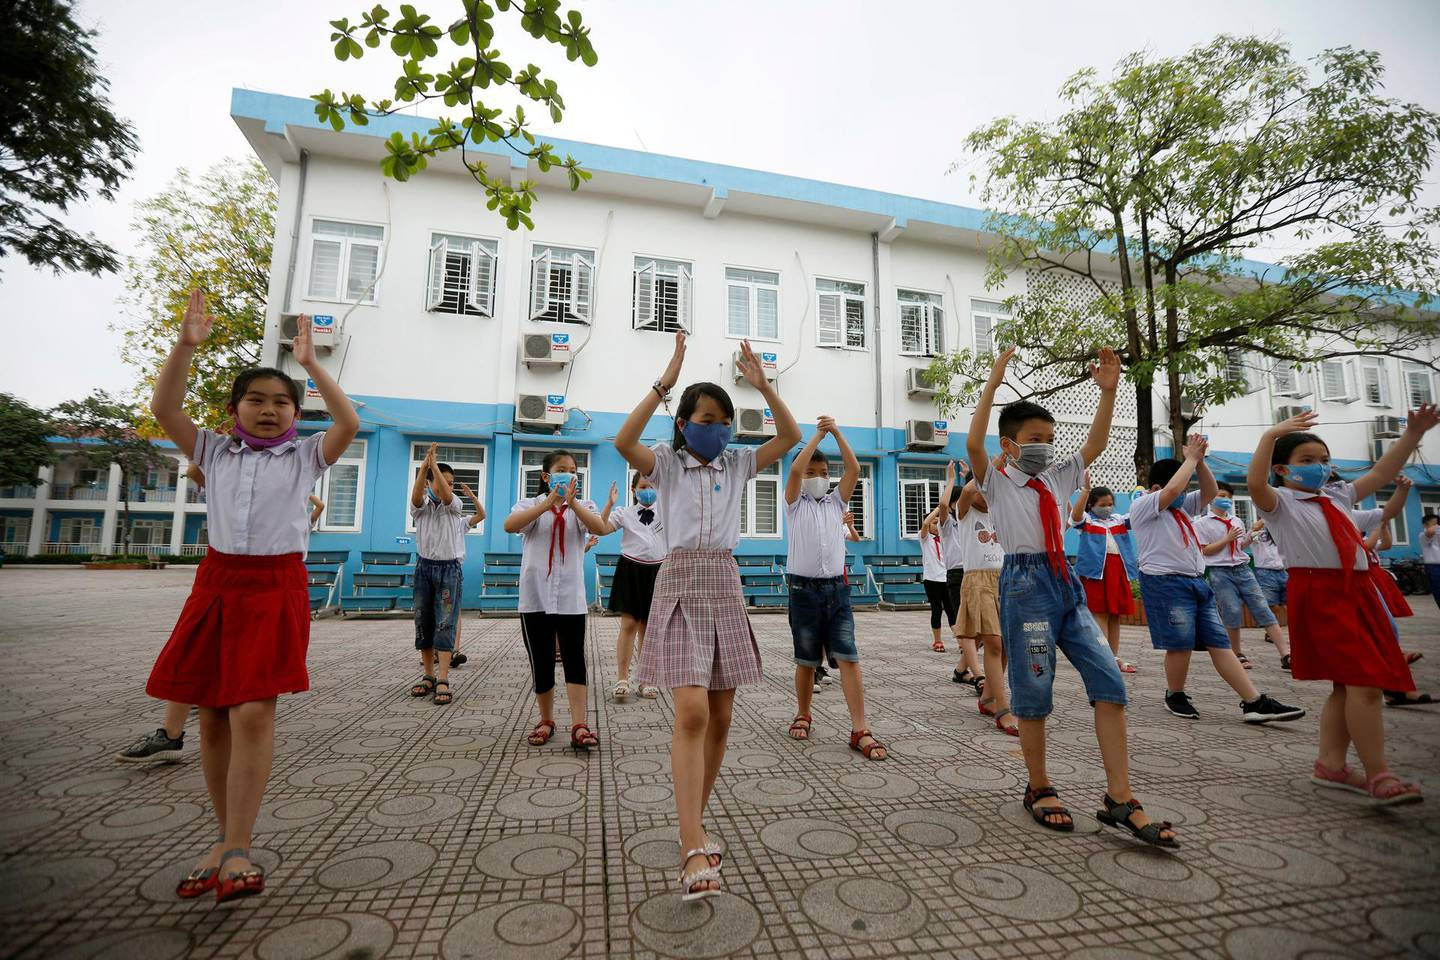 epa08415272 Children do gymnastic exercise in Phuc Dien elementary school Hanoi, Vietnam, 11 May 2020. Young children from kindergarten and elementary school across the country have returned to school after a three-month closure due to the COVID-19 disease pandemic.  EPA/LUONG THAI LINH